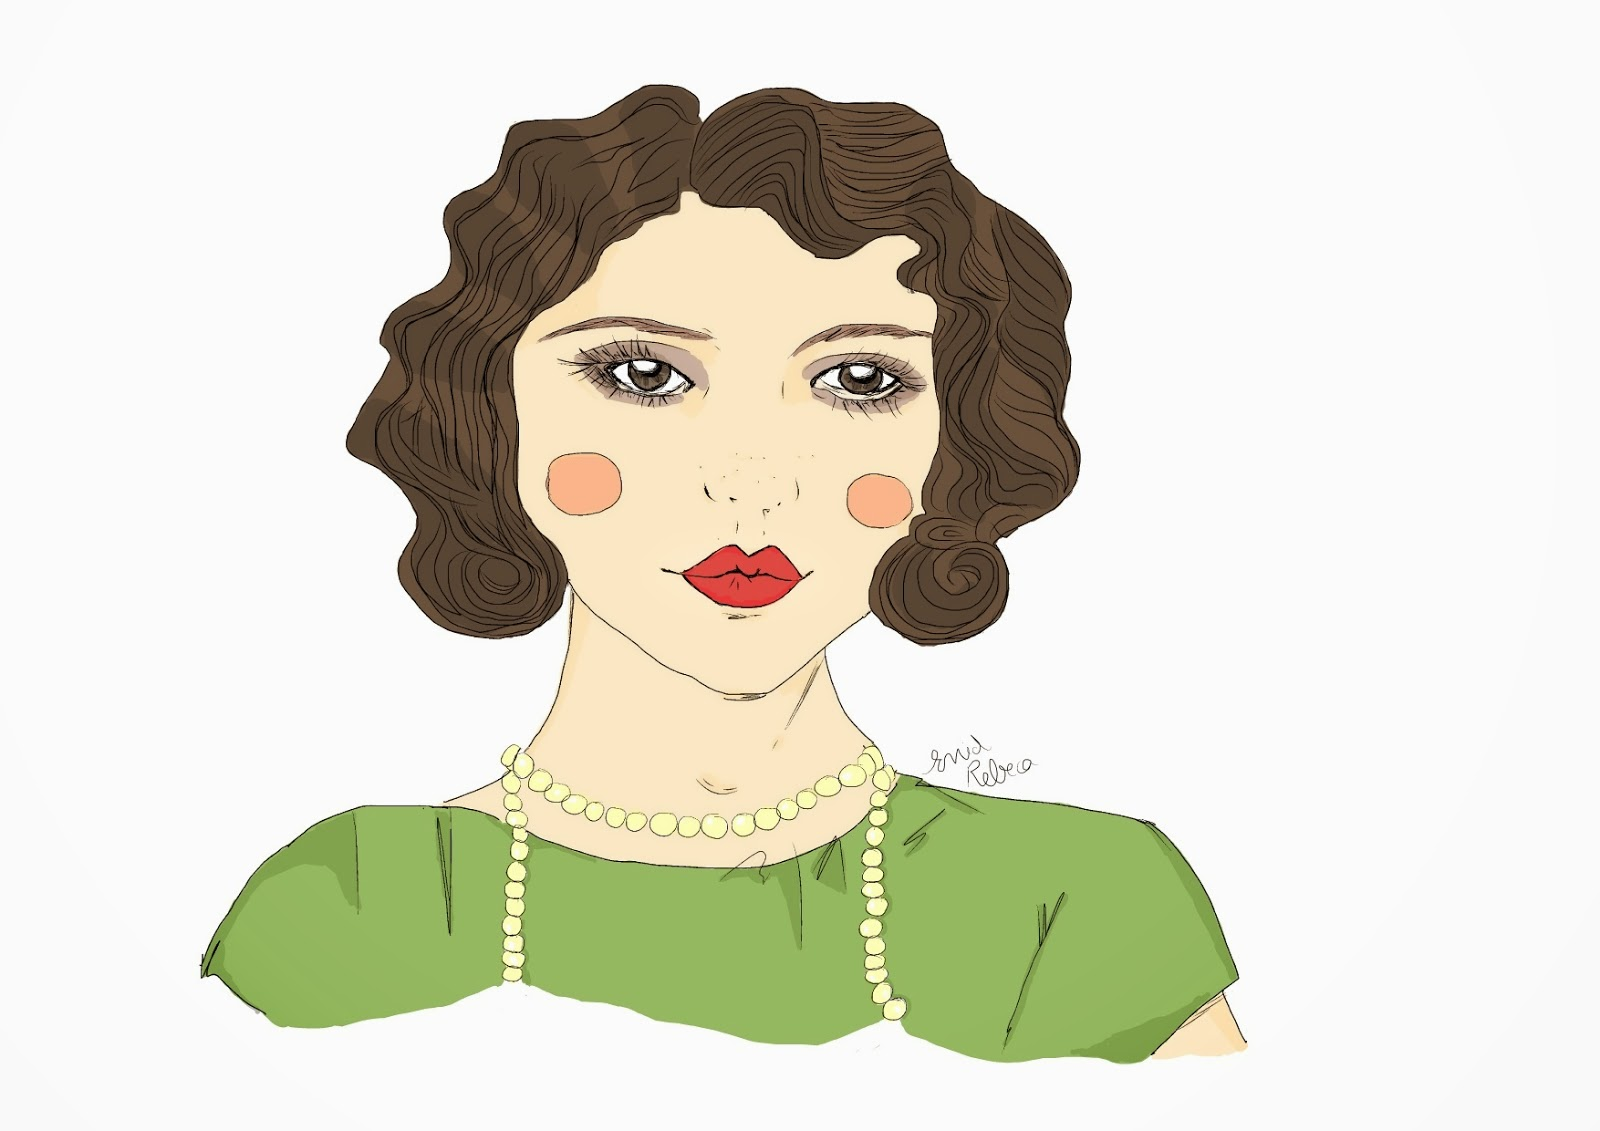 olas waves hairstyle 1920 20s años 20 ilustración drawing painting digital vintage retro